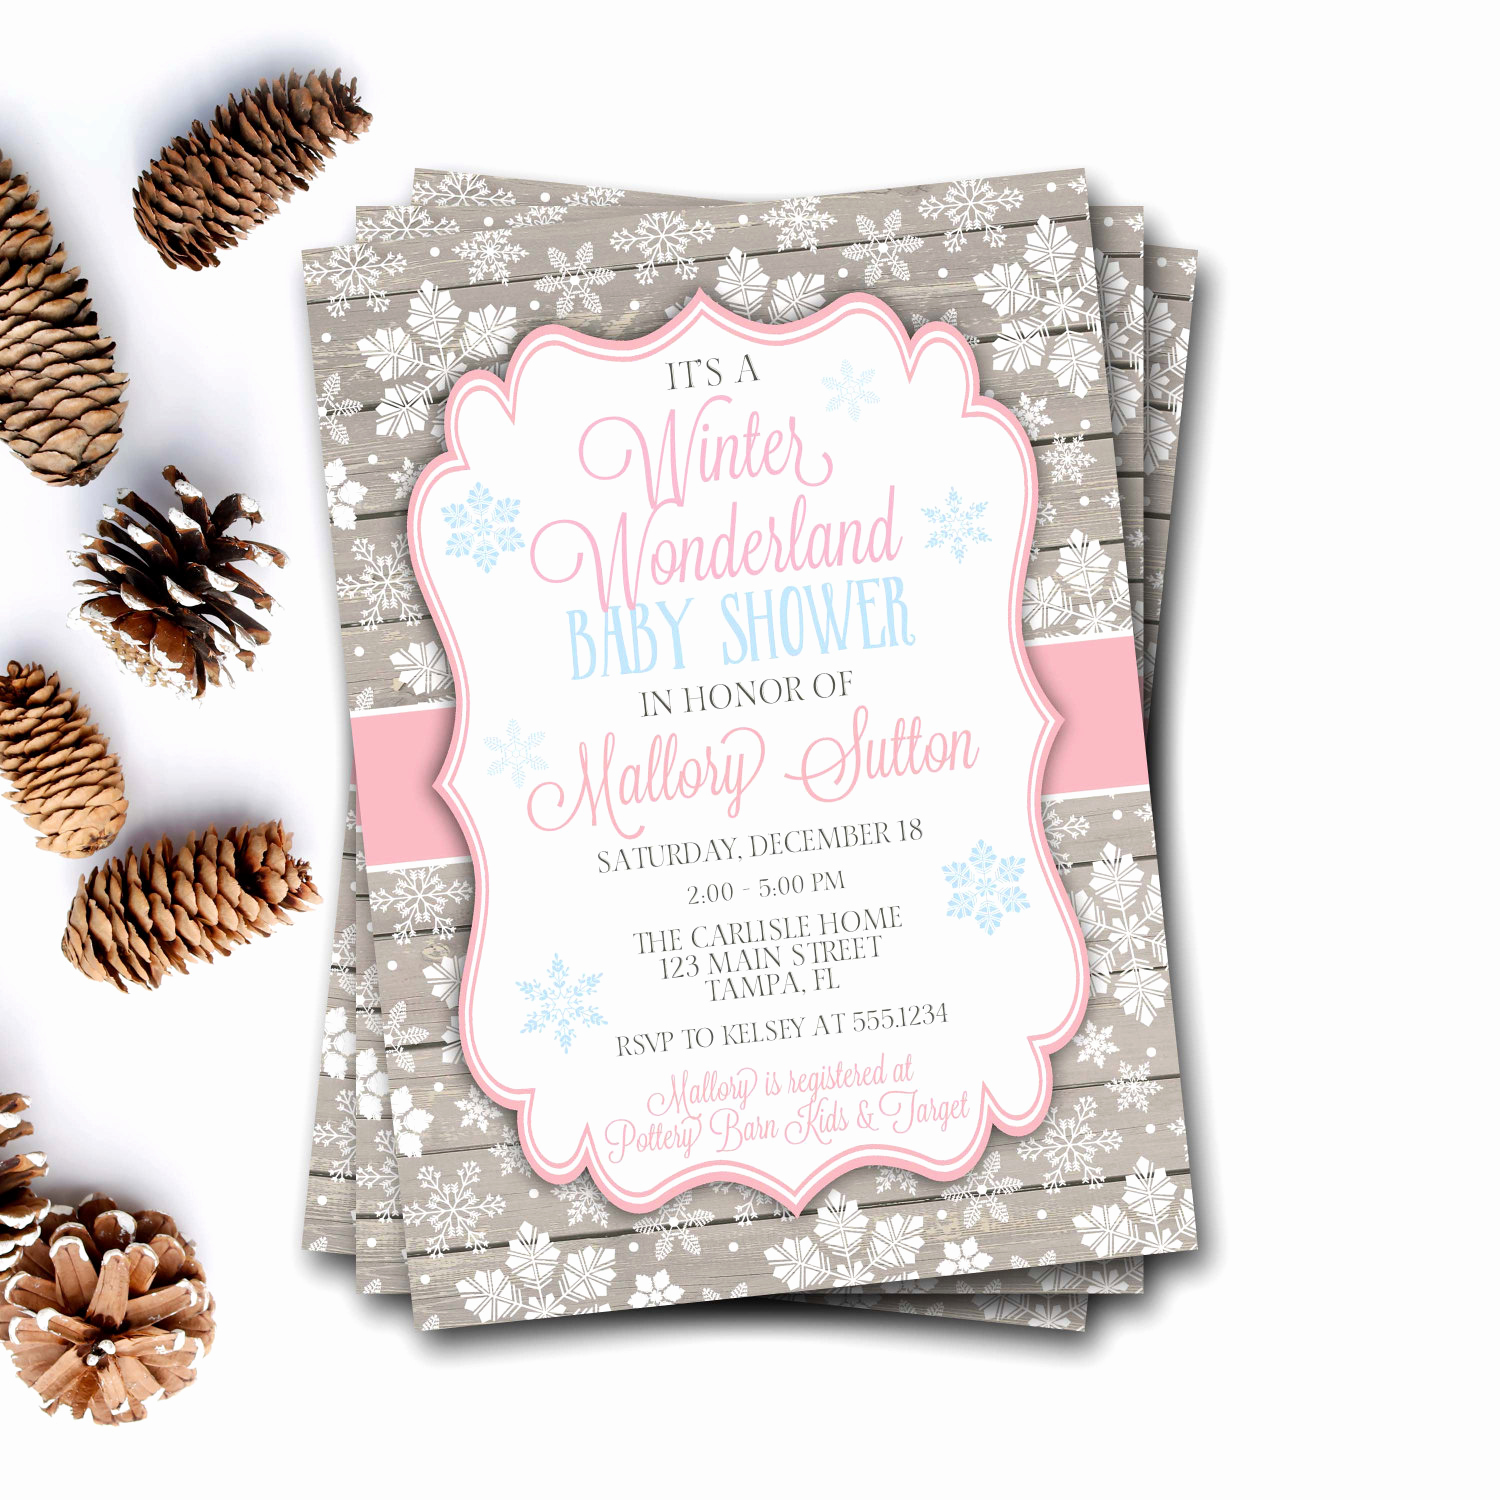 Winter Wonderland Baby Shower Invitation Luxury Winter Wonderland Baby Shower Invitation Winter Baby Shower